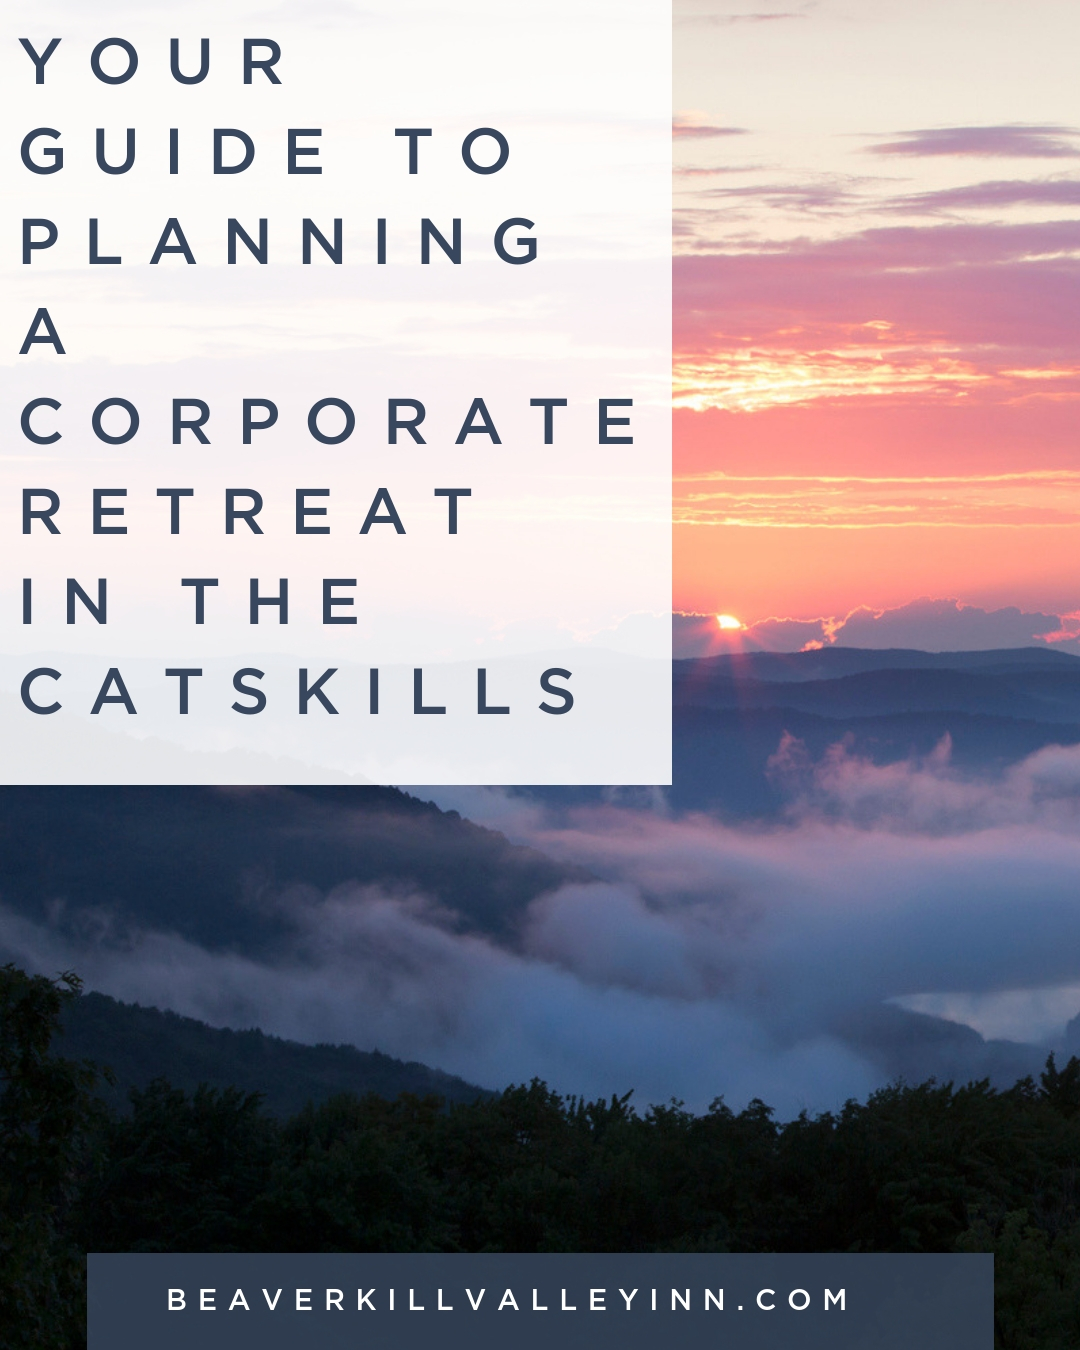 Your Guide to Planning a Corporate Retreat in the Catskills